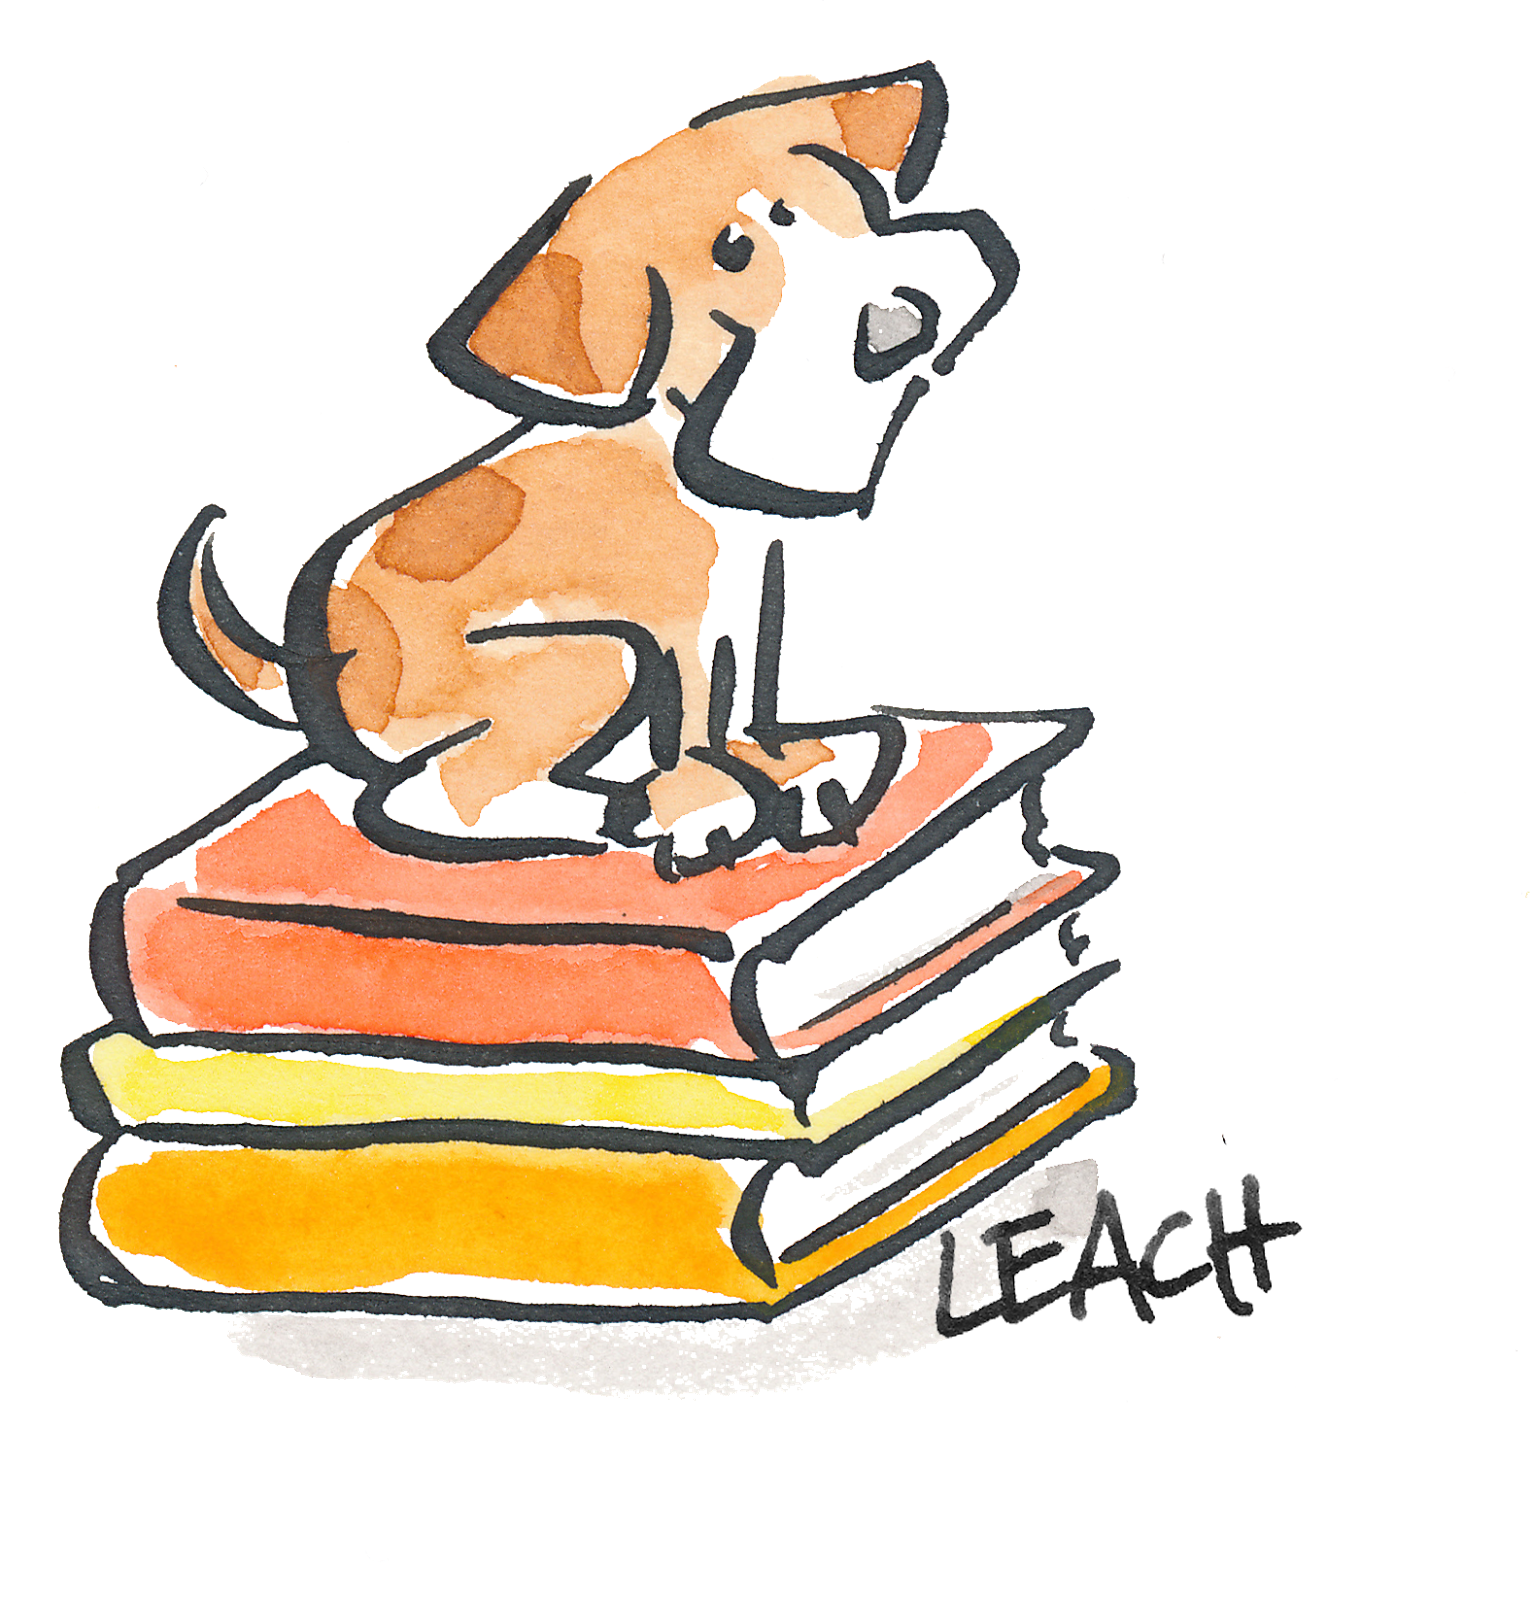 Magical book diary clipart clipart library download Bookshelves in the Cul-de-Sac clipart library download